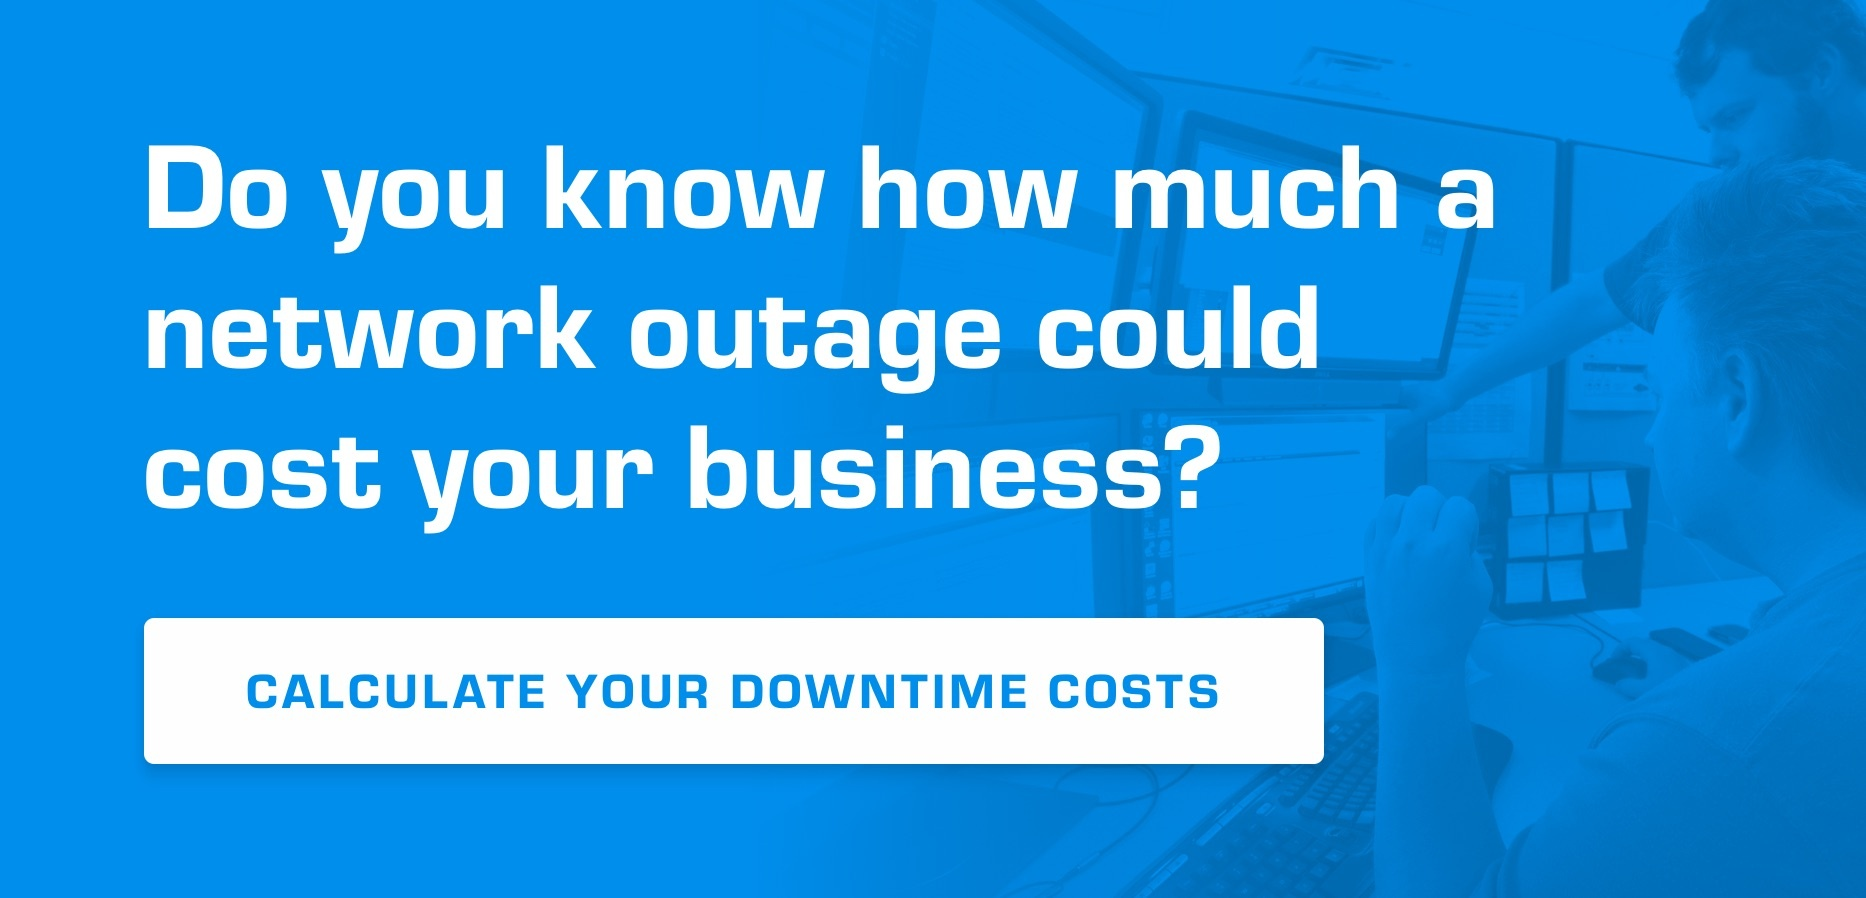 Do you know how much a network outage could cost your business? Calculate your downtime costs.